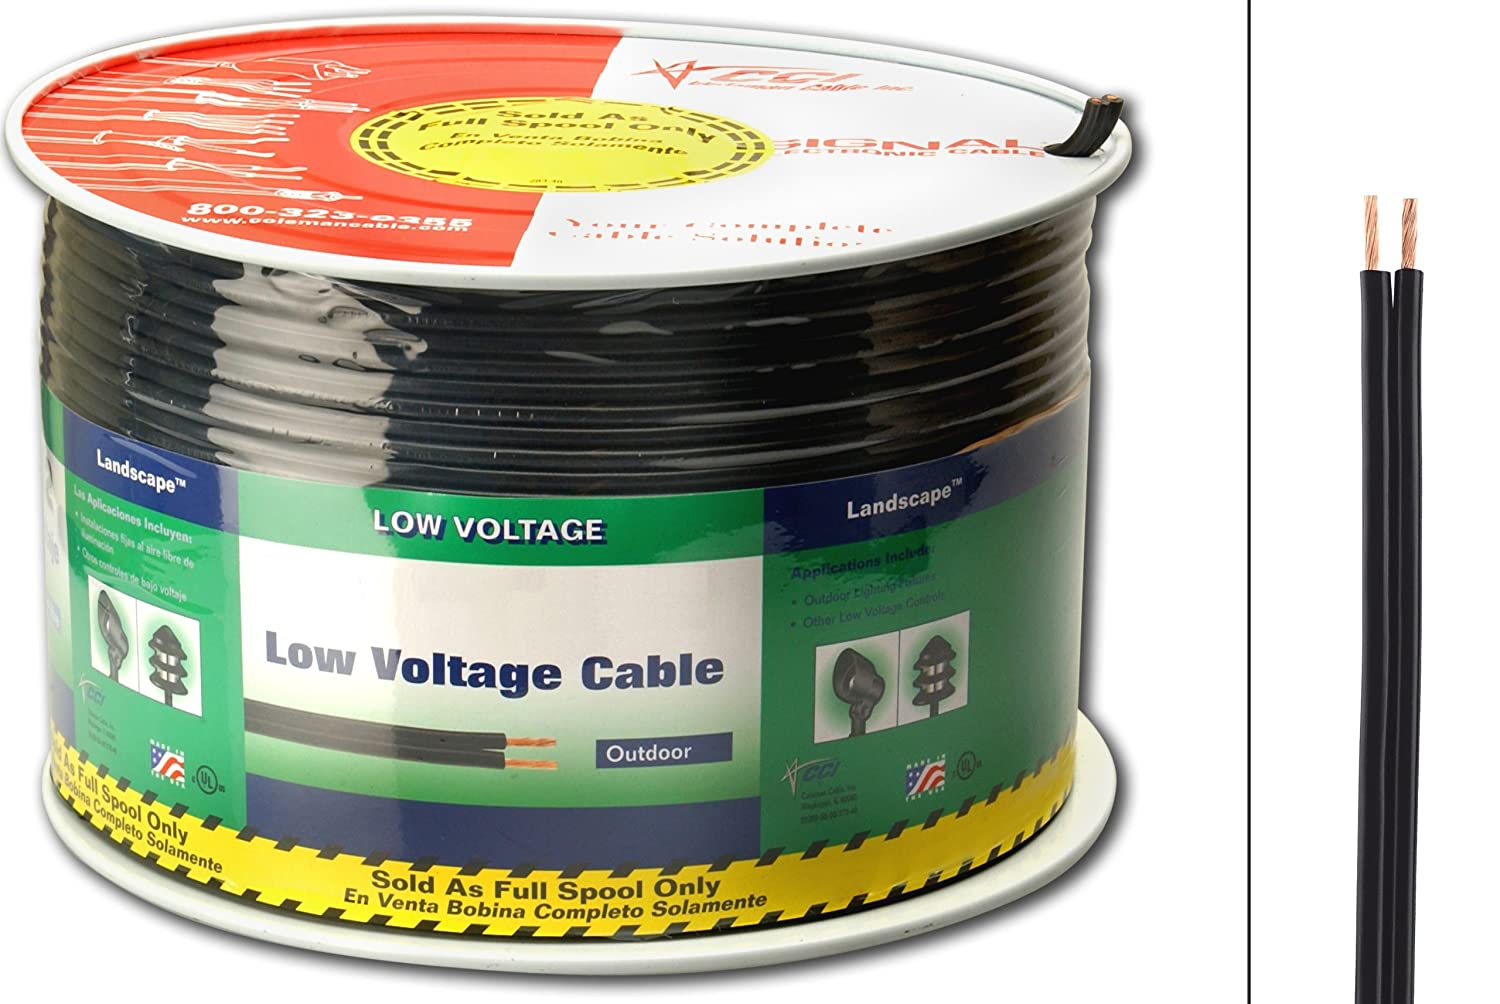 150 V Bare 250-Feet Copper Coleman Cable 552660408 Low Voltage Cable 250 Ft 16//2